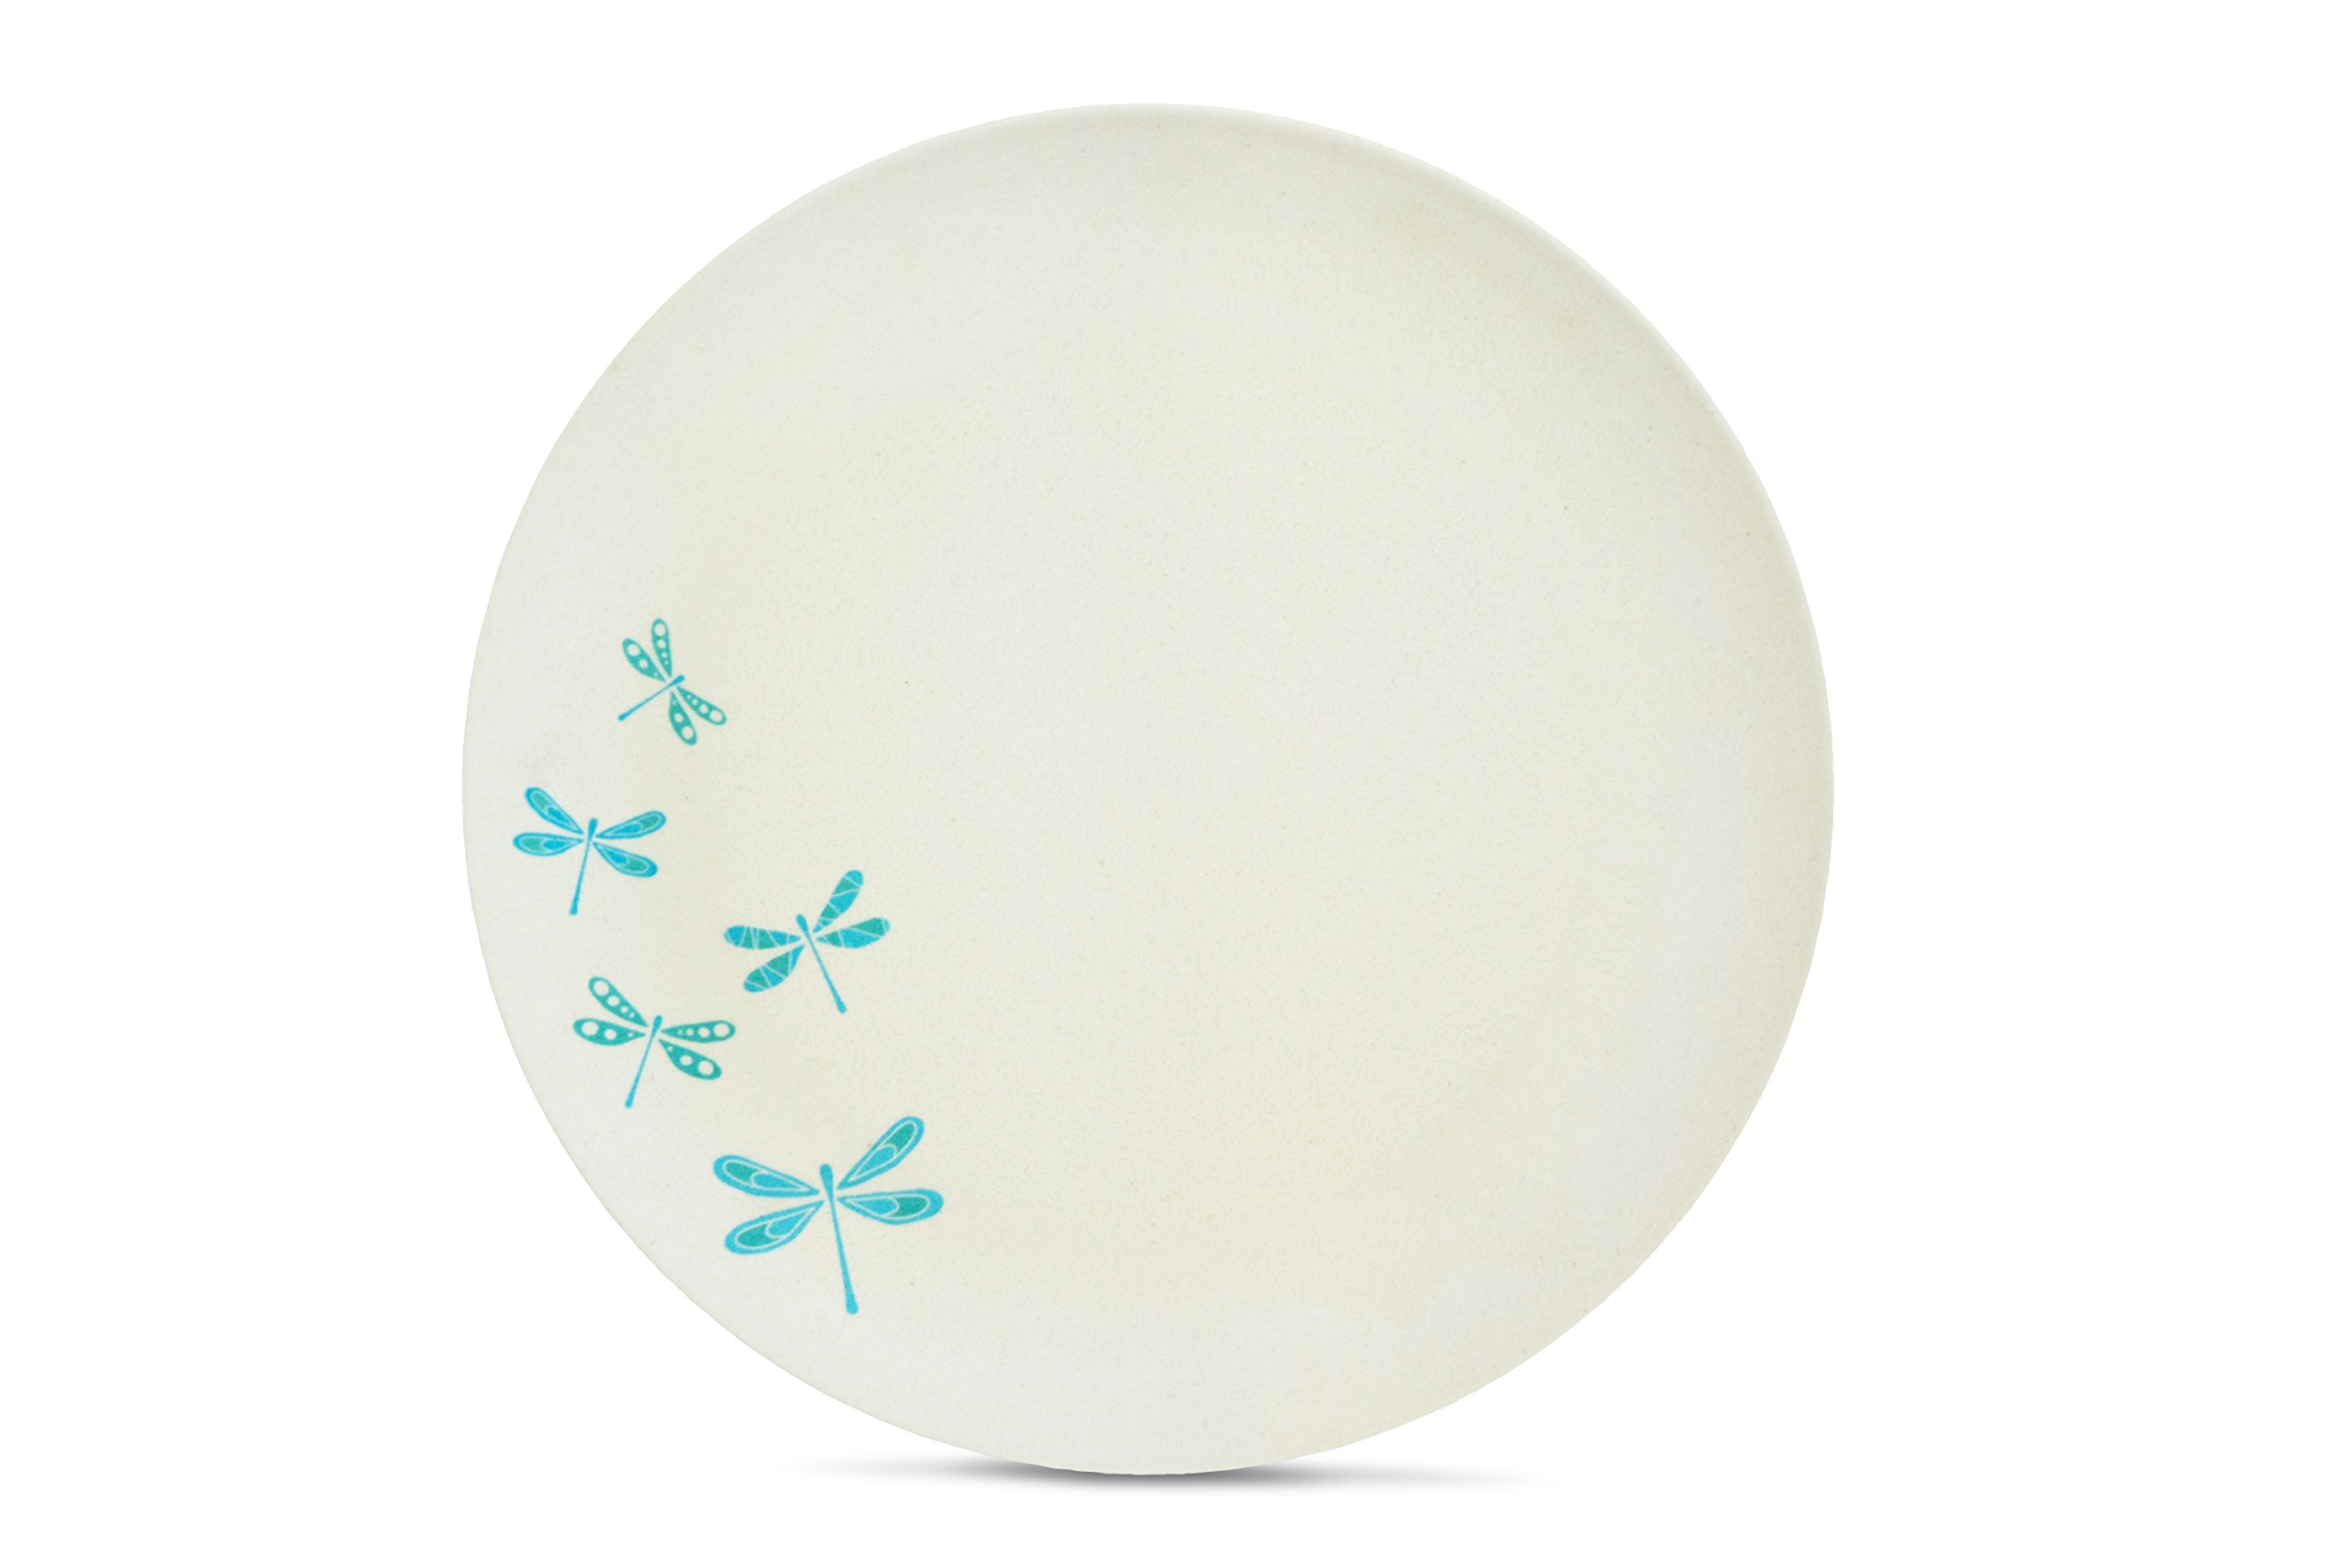 Aquaterra Living Ecofriendly Dinner Plate Set with Dragonfly Designs- Set of 6, 10'' indoor or outdoor plates